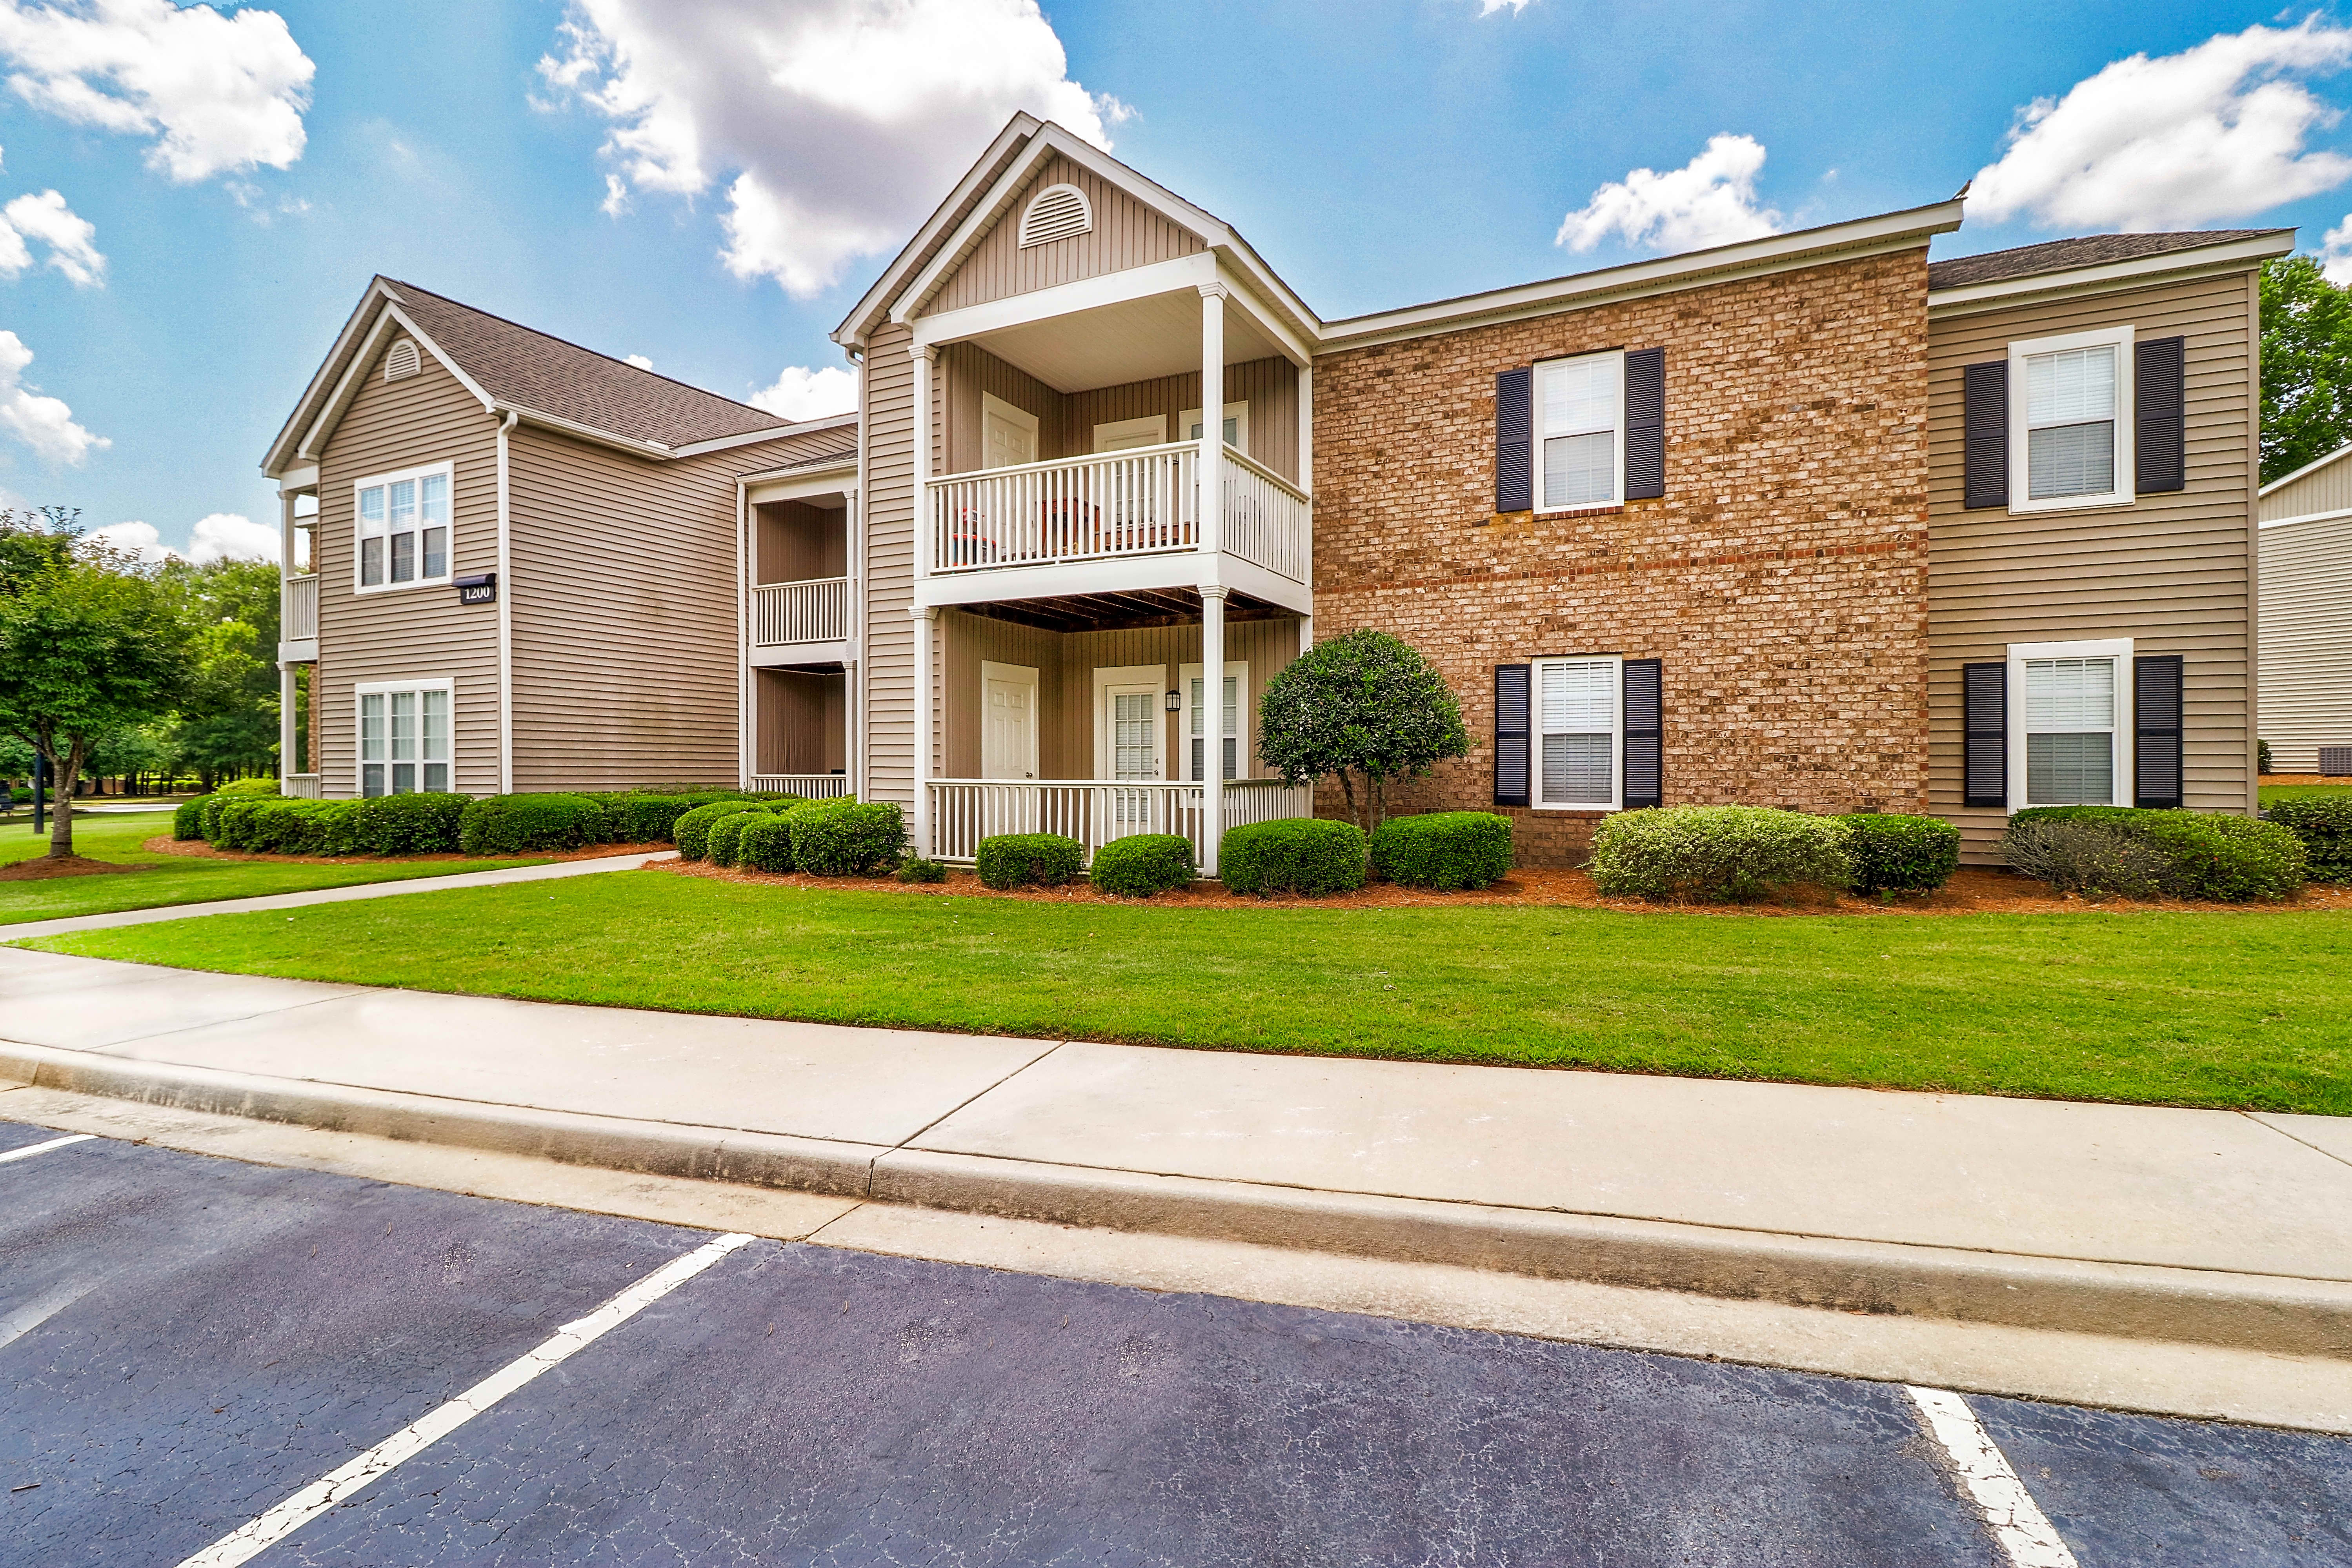 Apartments Near FVSU Brighton Park Apartment Homes for Fort Valley State University Students in Fort Valley, GA